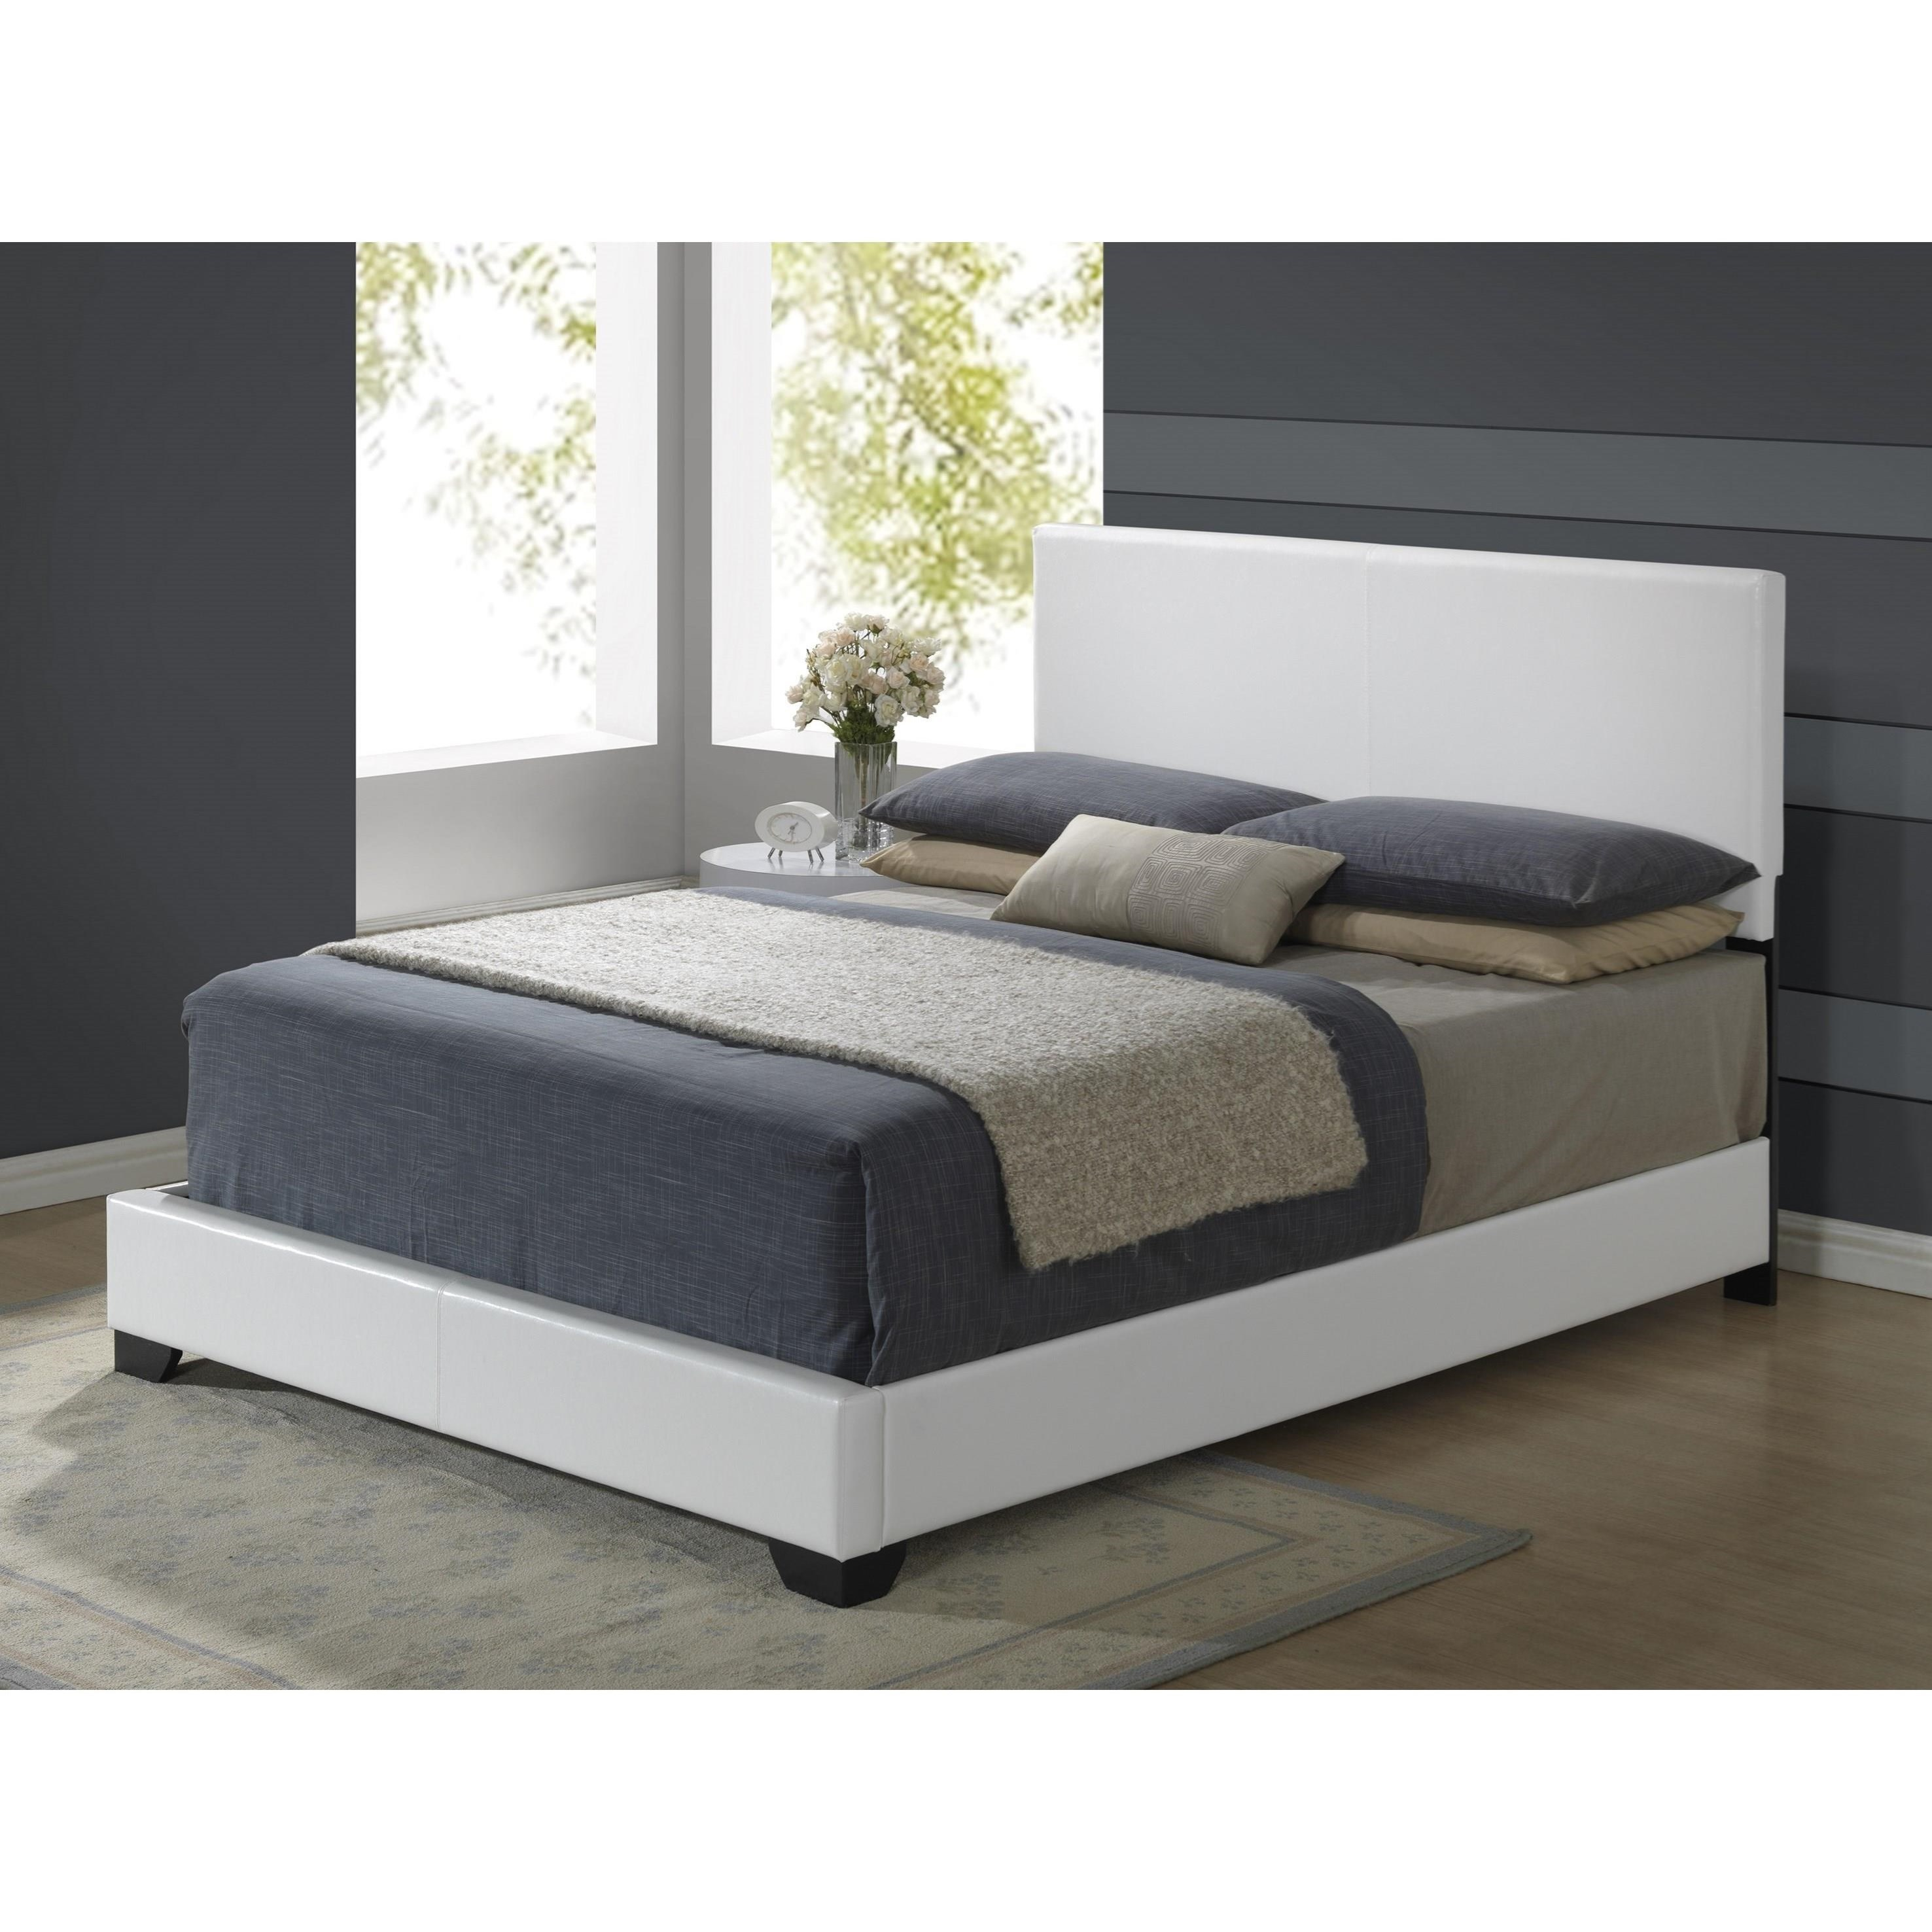 8103 Upholstered King Bed by Global Furniture at Dream Home Interiors